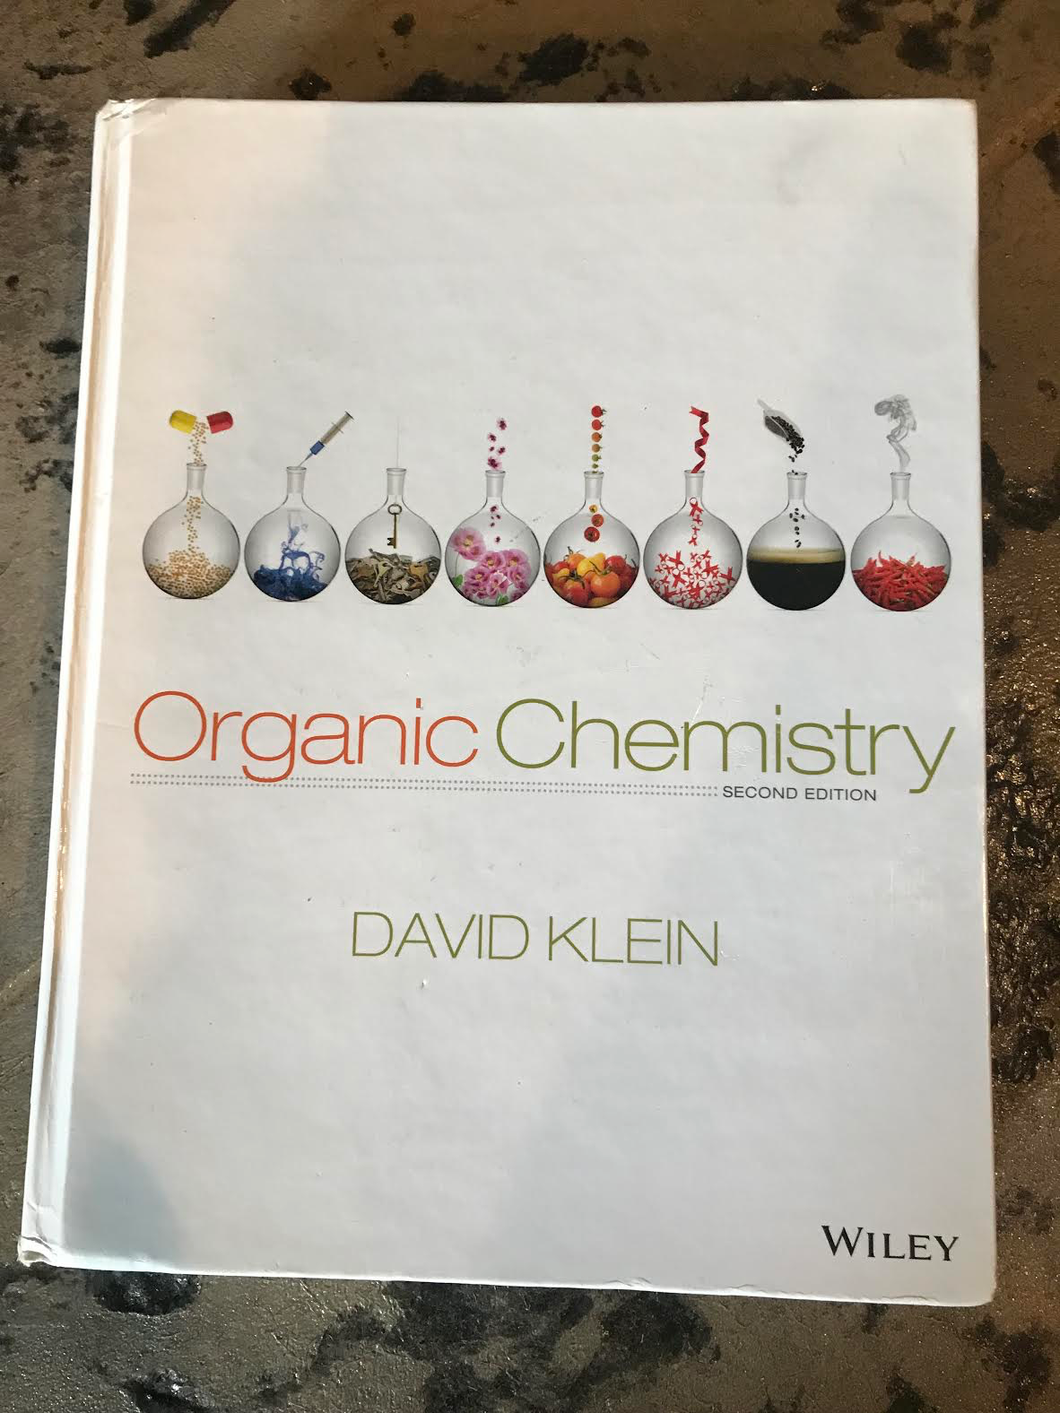 CHE-141: Organic Chemistry 2nd Edition